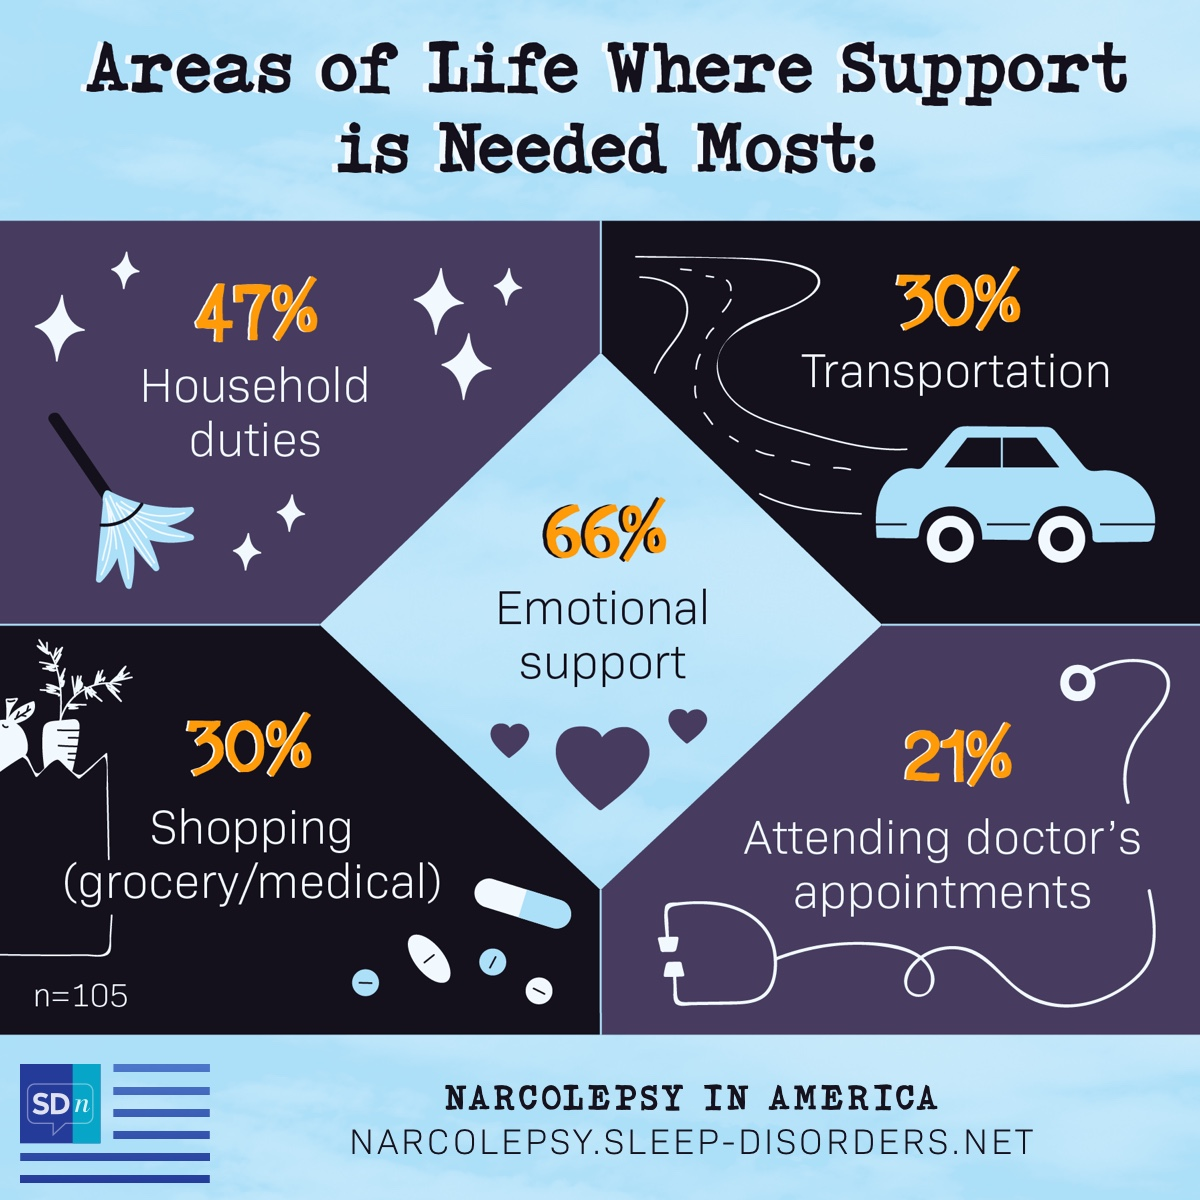 According to the Narcolepsy In America survey, areas of life that support is needed most are 47% household duties, 47% grocery and/or medical shopping, 30% transportation, 30% attending doctor's appointments.